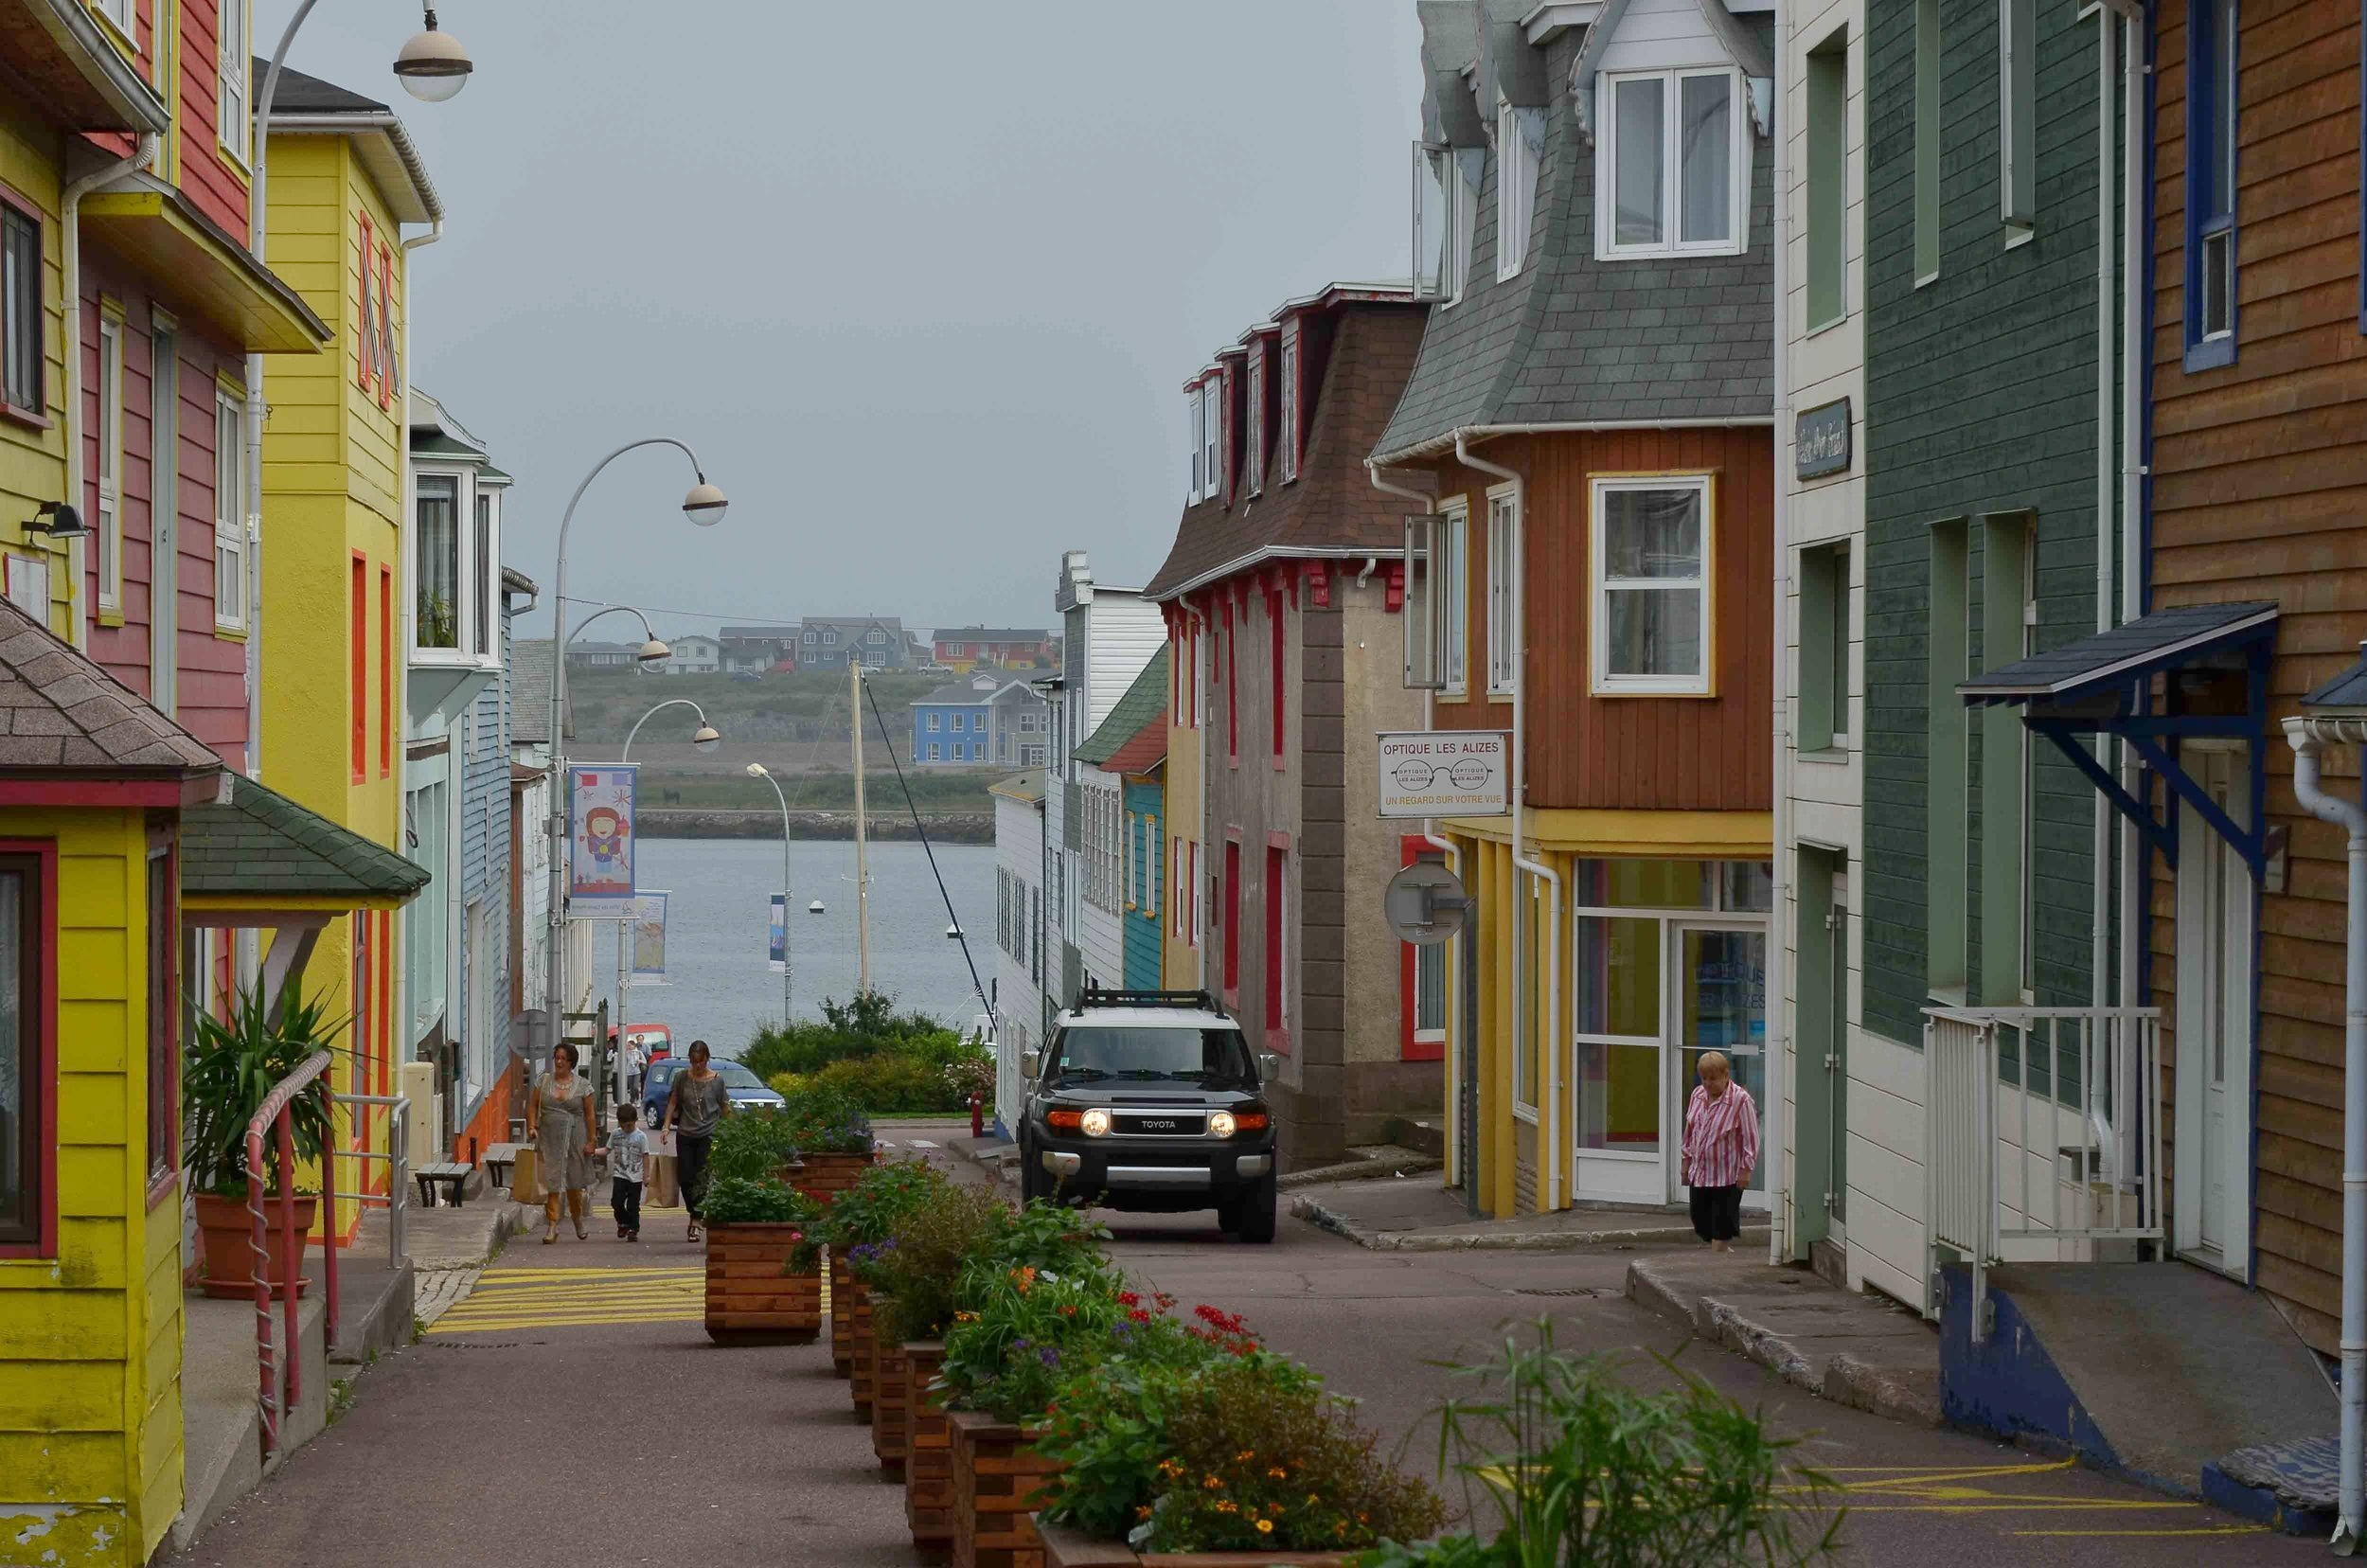 Typical St Pierre street scene. Thirty five miles away in a Newfoundland town we couldn't buy a cup of coffee because there were no cafés or restaurants. In St Pierre you needed reservations for dinner and prices were equivalent to the French mainland.